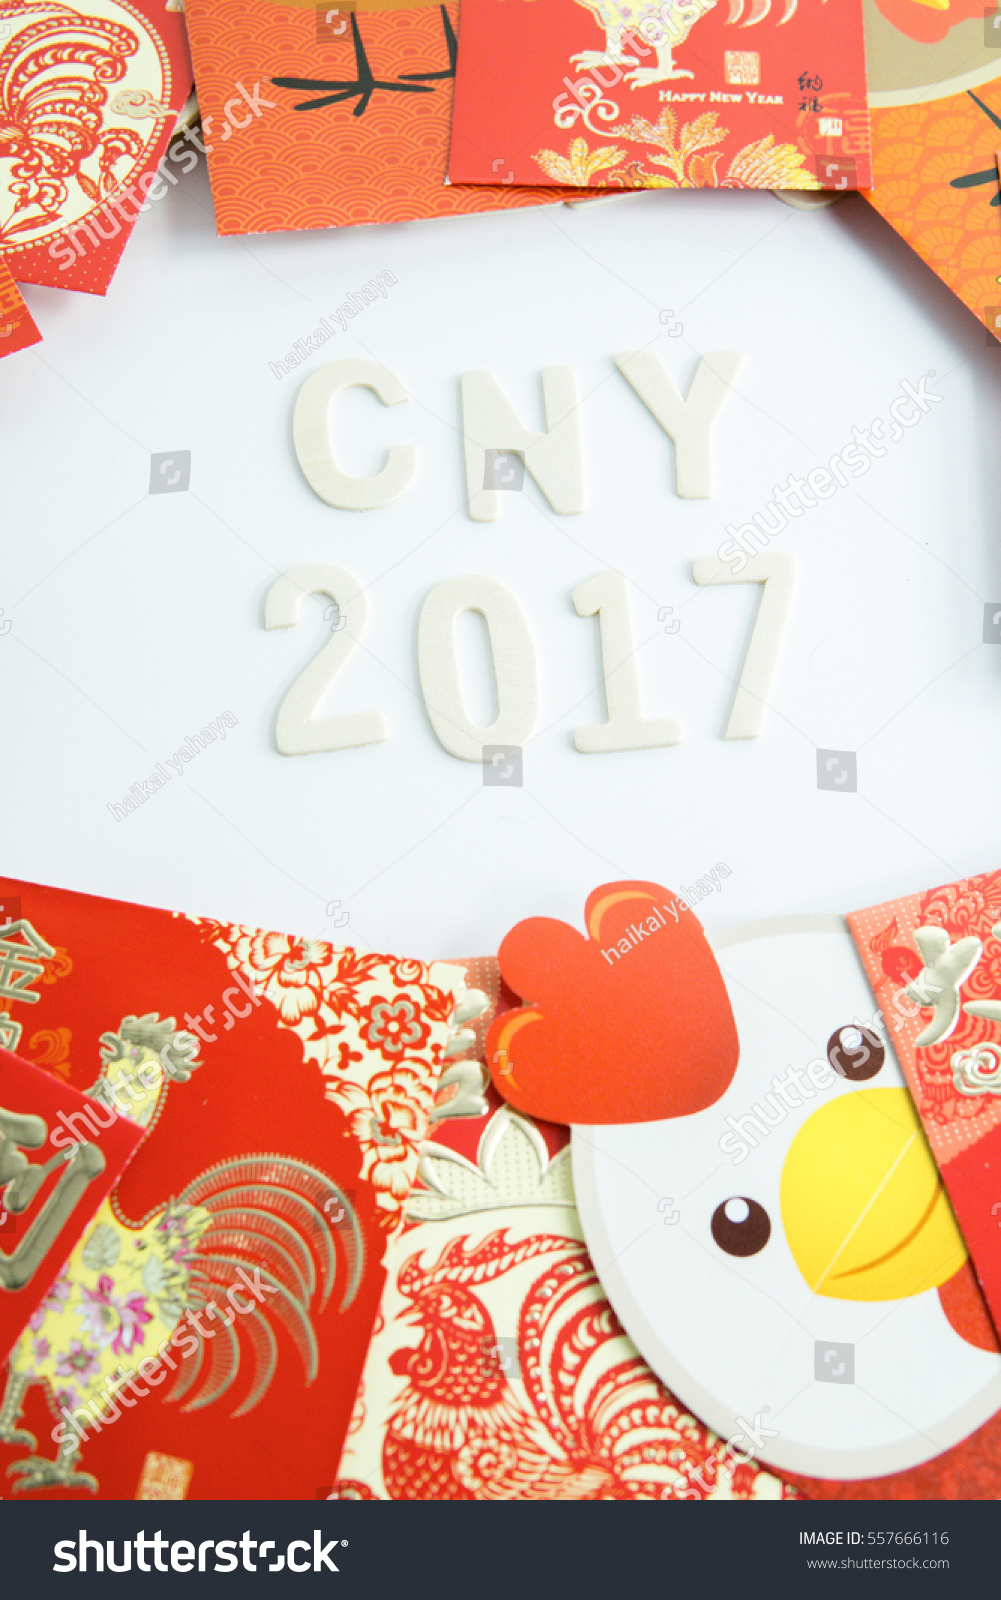 Chinese new year festival decorations red stock photo for Ang pow decoration